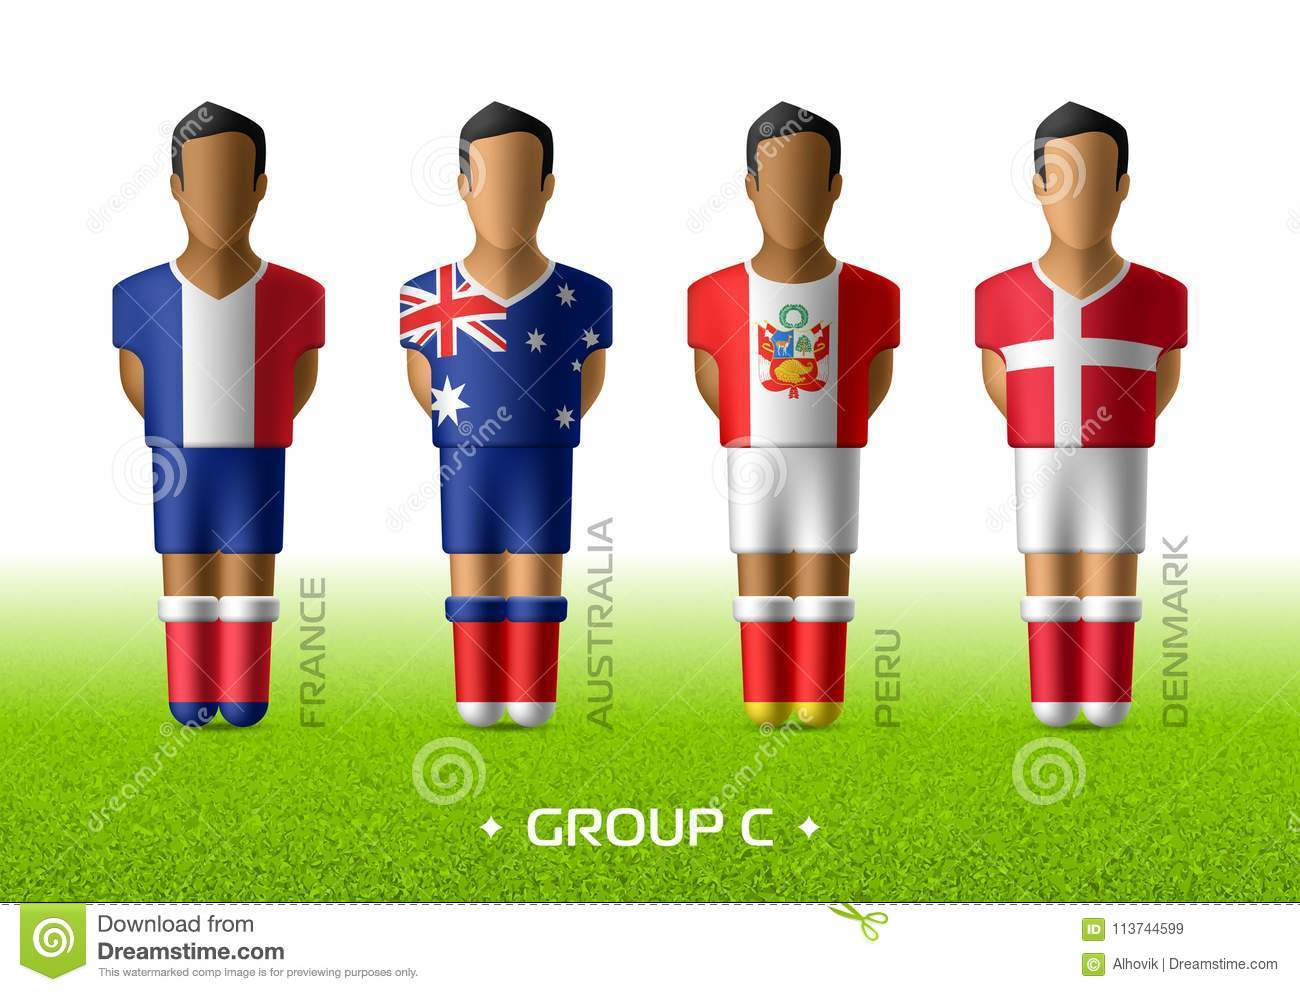 5da6e78c2f75f Football / soccer team players in the uniform of national flags for football  championship in Russia 2018. Group C with footballers of France, Australia,  ...